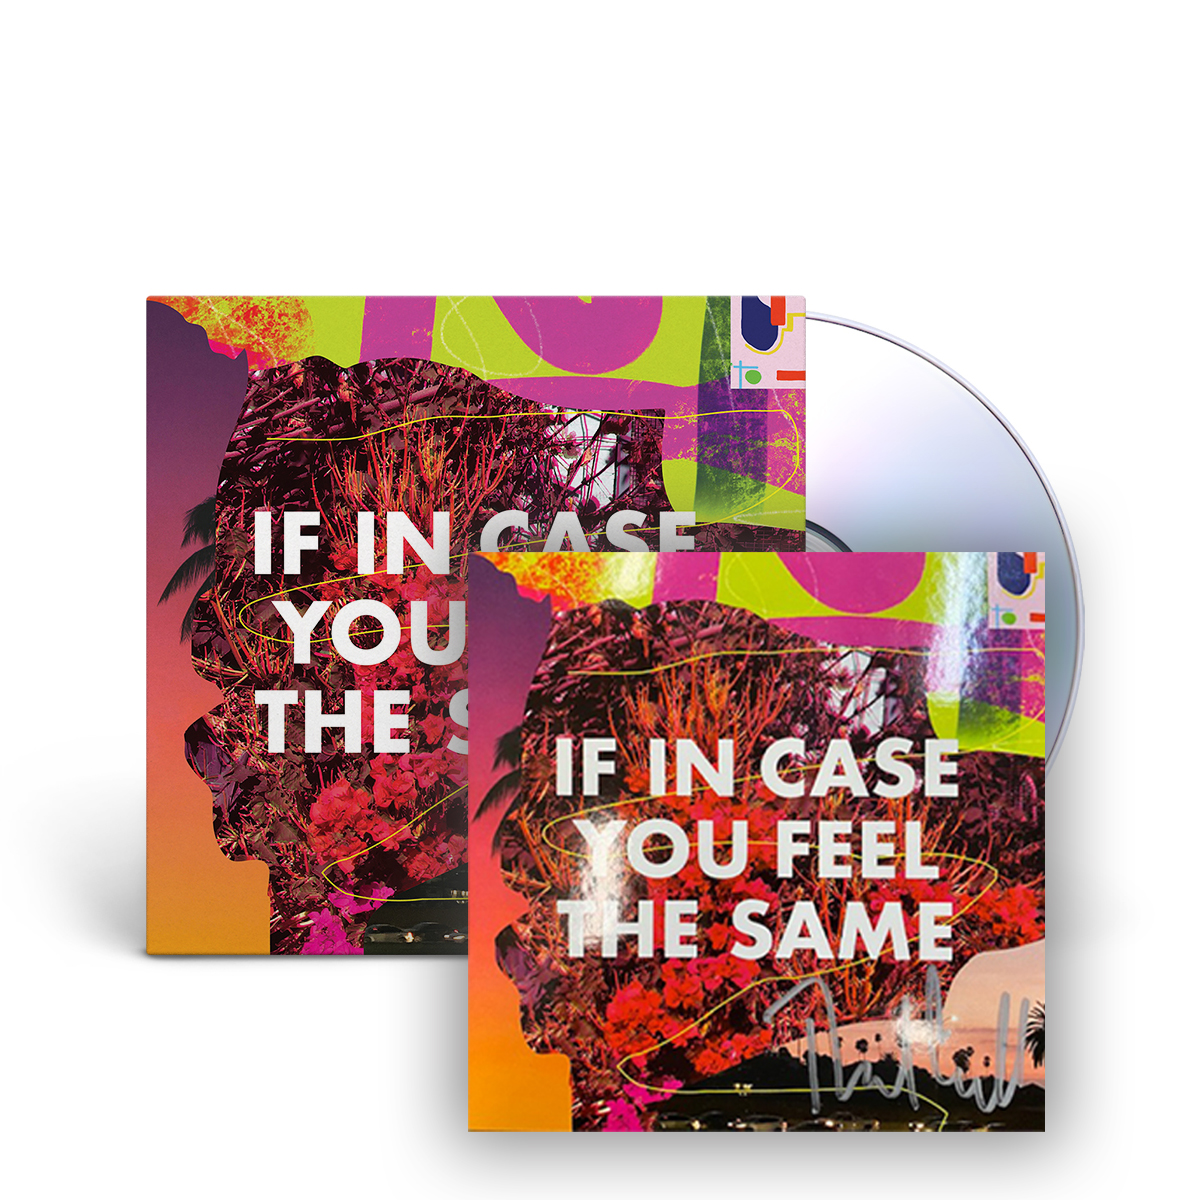 Thad Cockrell – If In Case You Feel The Same – CD